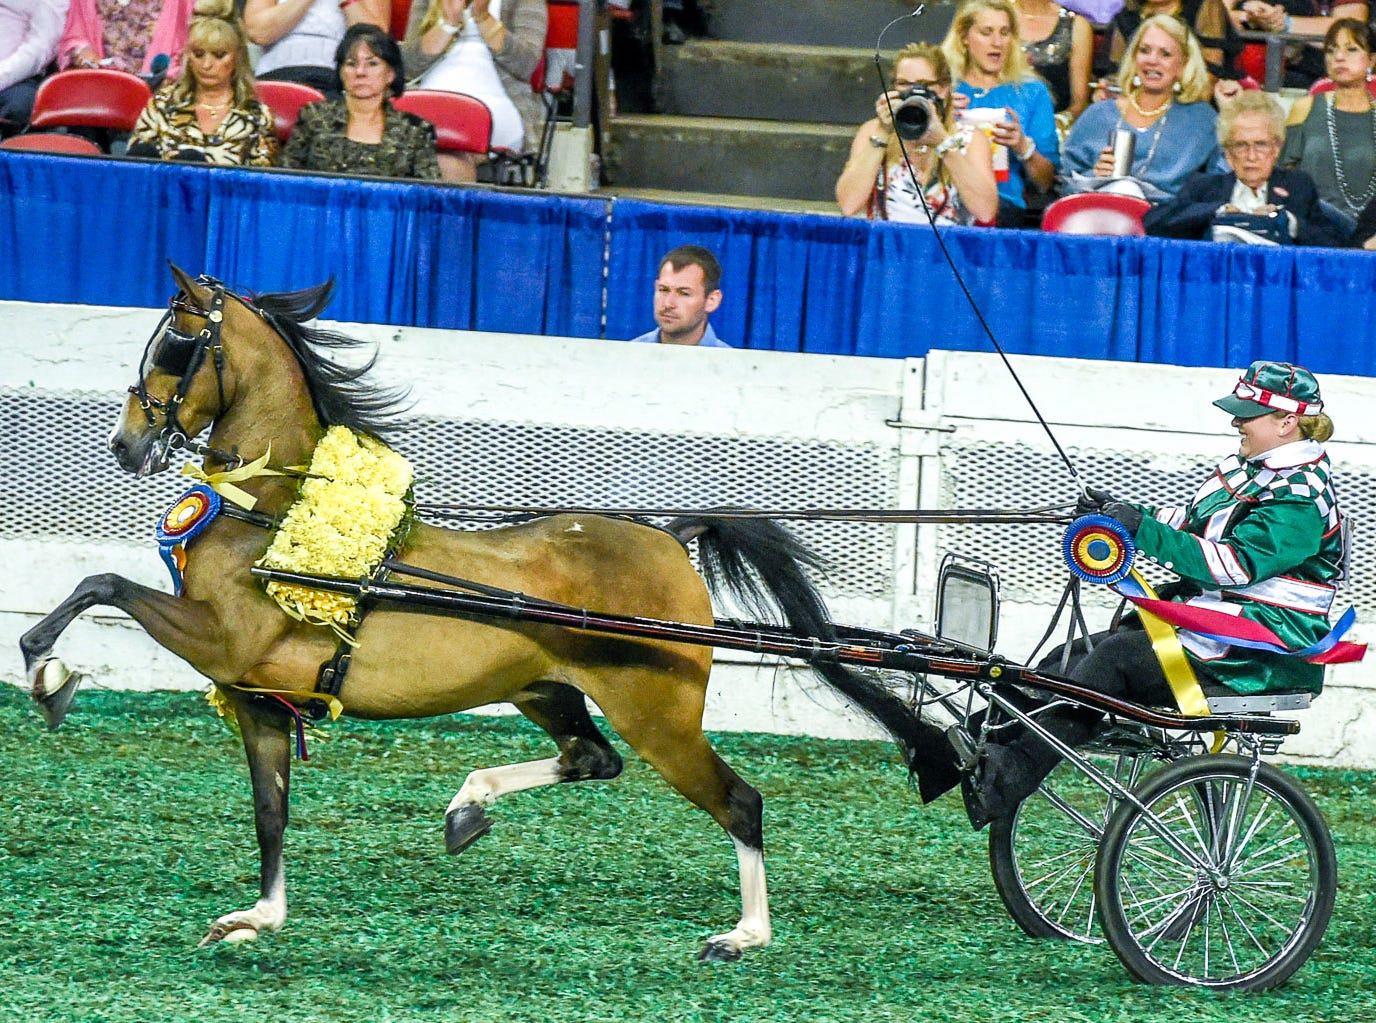 AMATEUR ROADSTER PONY CHAMPIONSHIP winner AG MASERATI driven by Allie Nunley for All Well Farm trained by Maureen Campbell